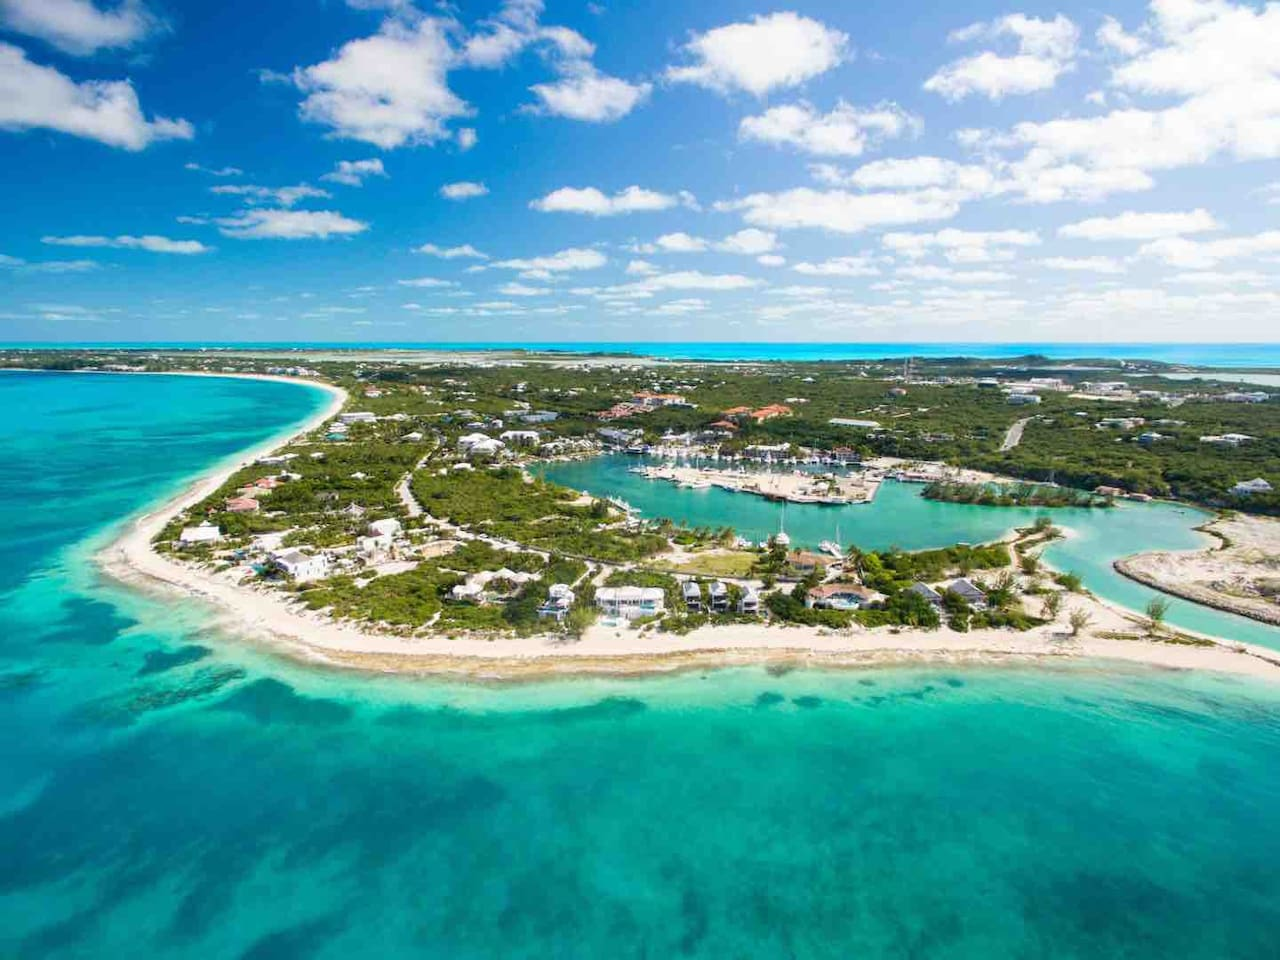 Welcome to beautiful Turks and Caicos  Check our video on youtube channel  https://www.youtube.com/watch?v=AK1irBD-toE